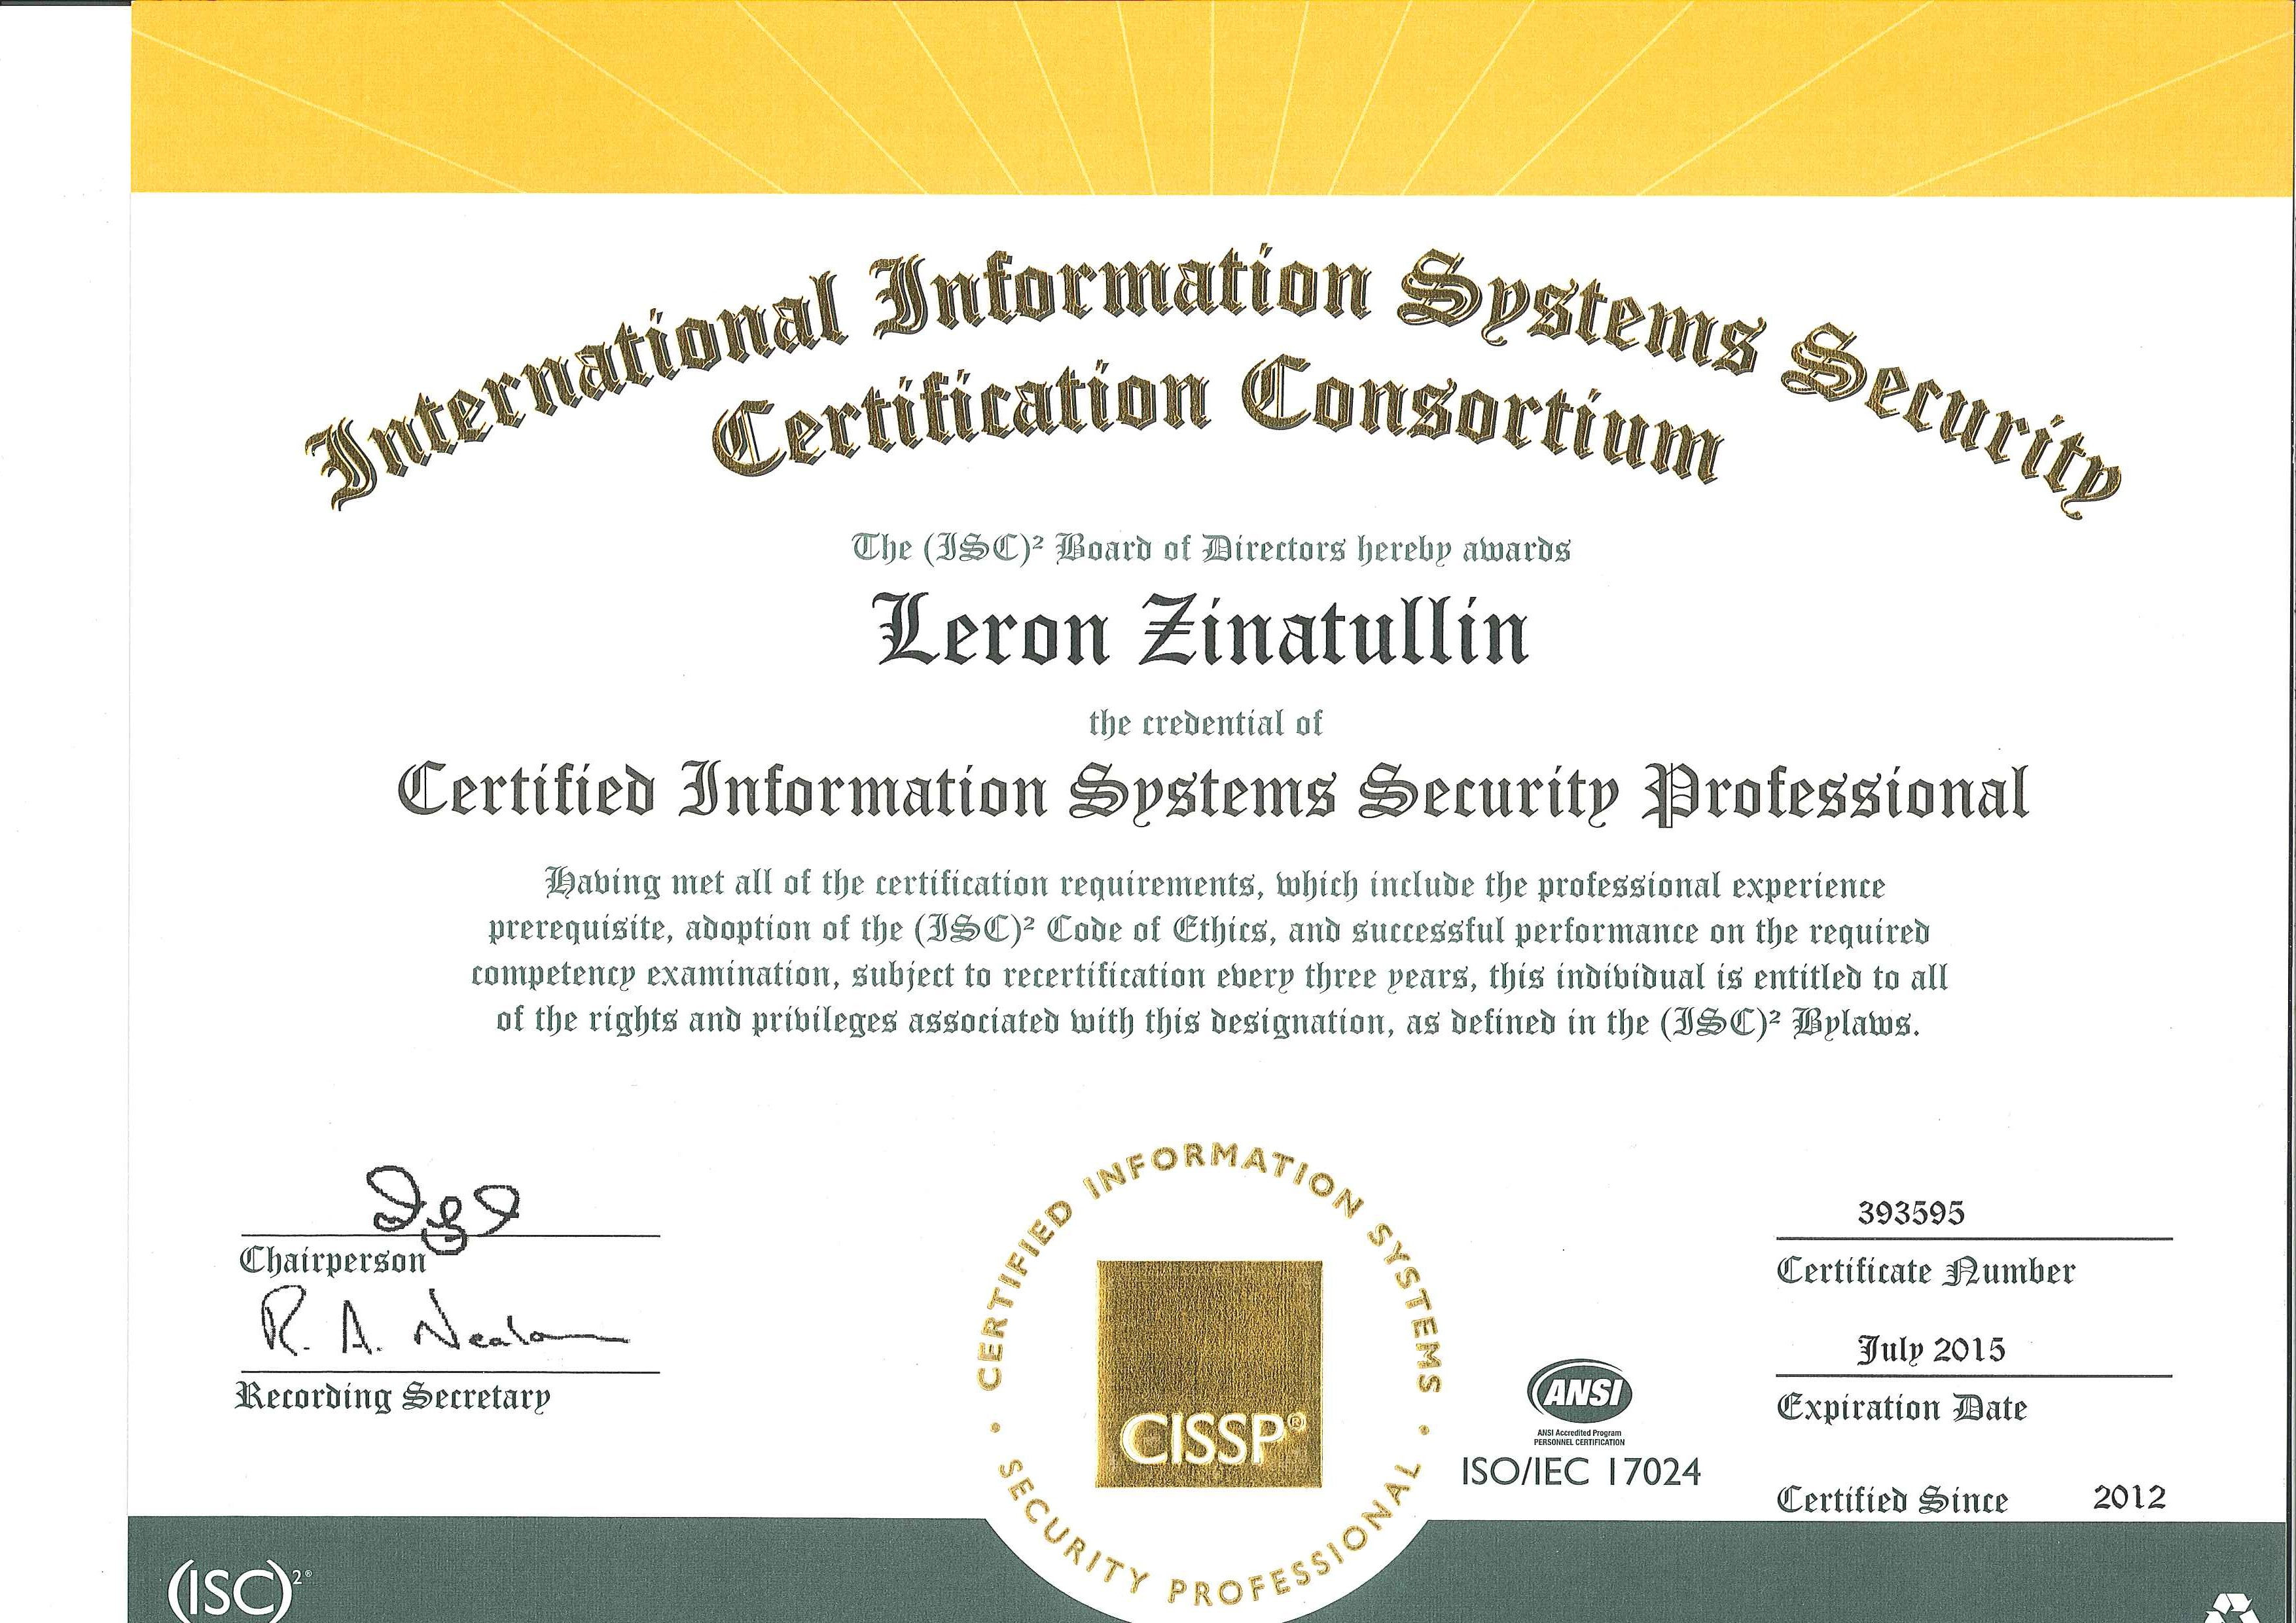 Beautiful pictures of cissp certification cost business cards about me from cissp certification cost image source zinatullin xflitez Images